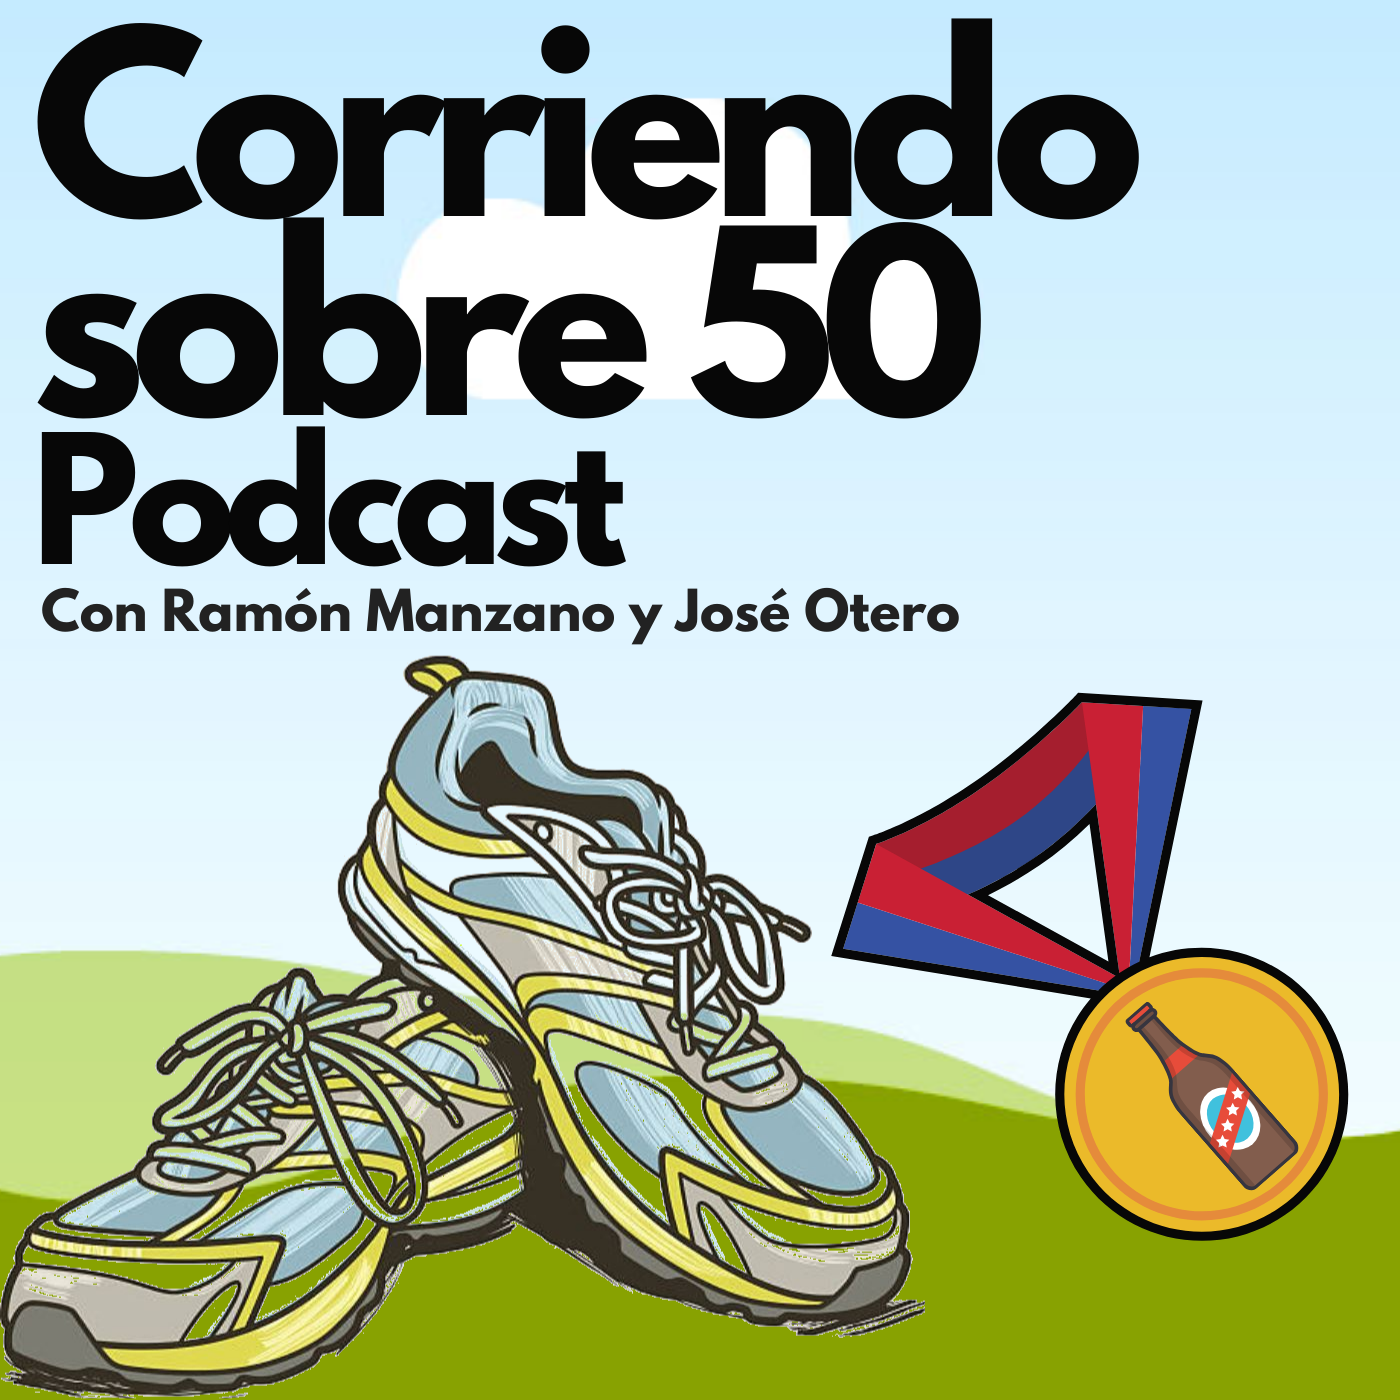 Corriendo sobre 50 Podcast